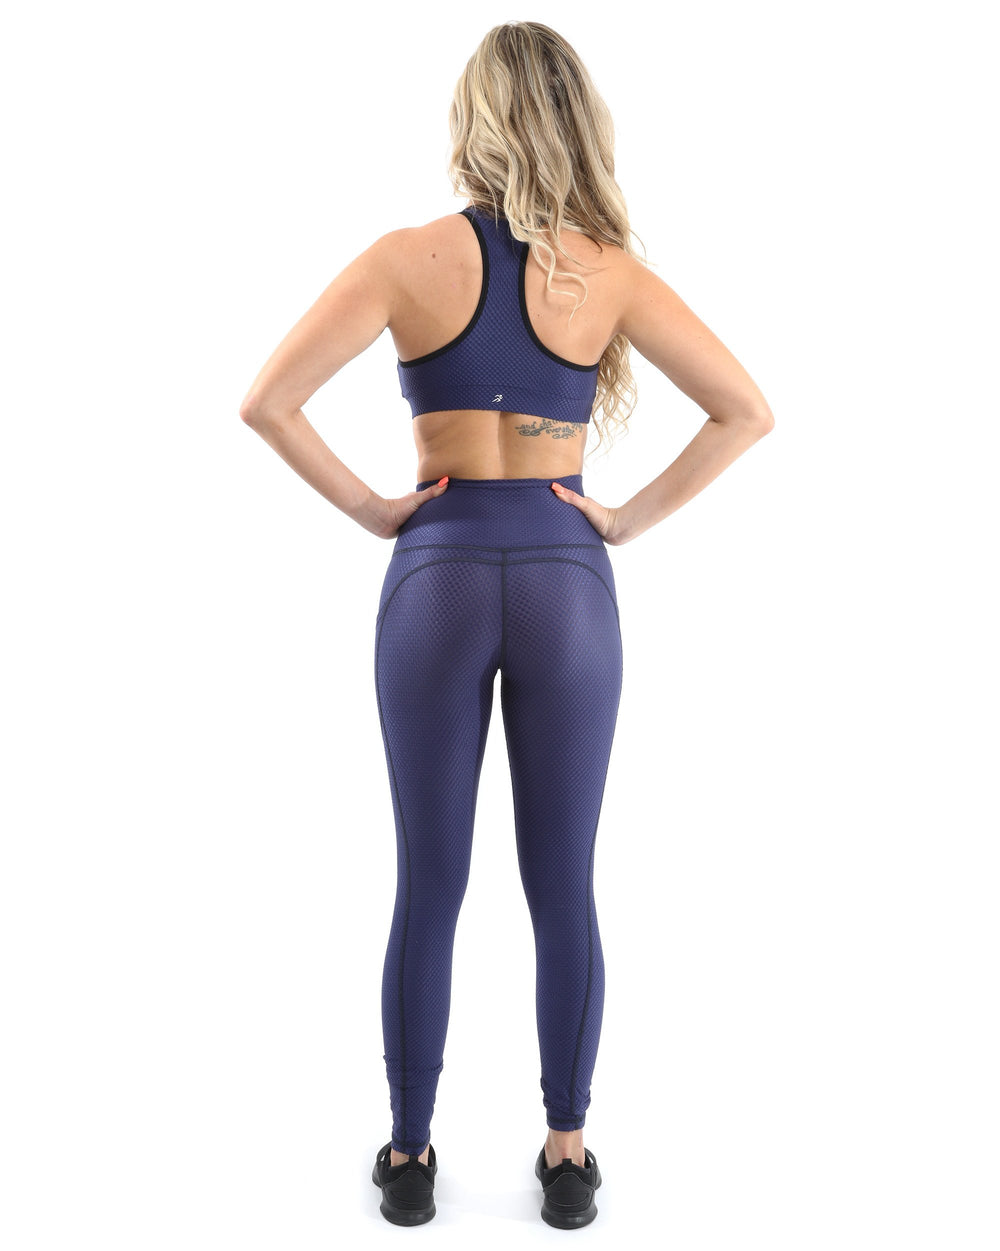 Venice Activewear Set - Leggings & Sports Bra - Navy [MADE IN ITALY]